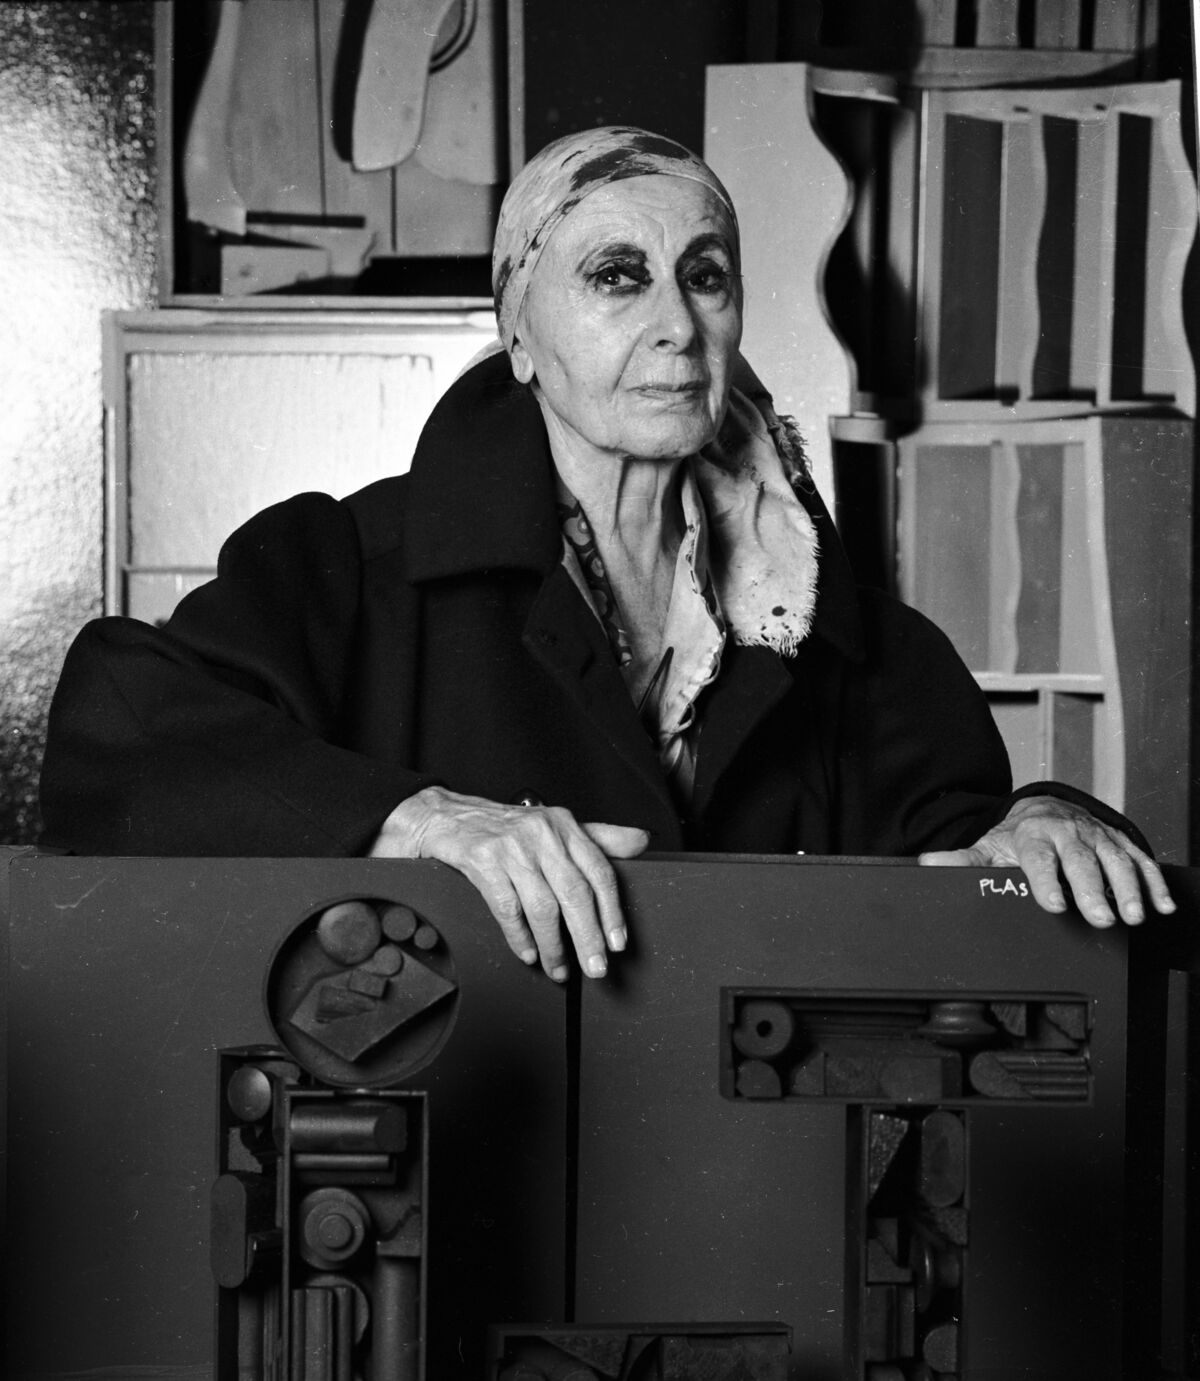 Portrait of Louise Nevelson in her New York City studio, 1983. Photo by Jack Mitchell/Getty Images.